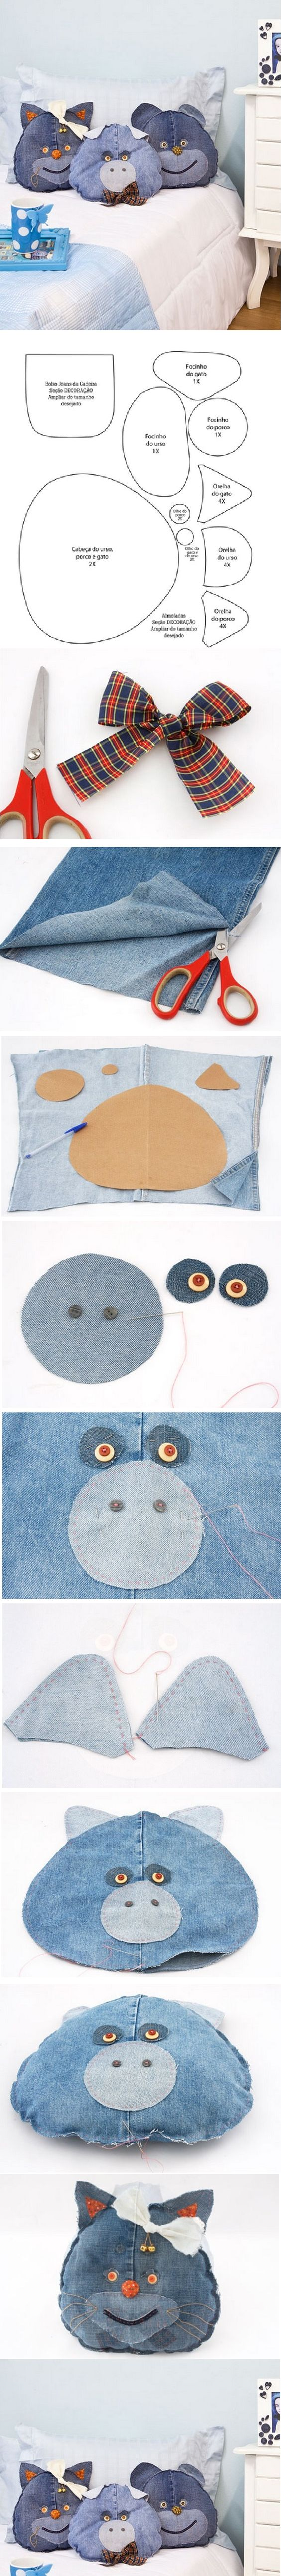 DIY Funny Jeans Pillows: